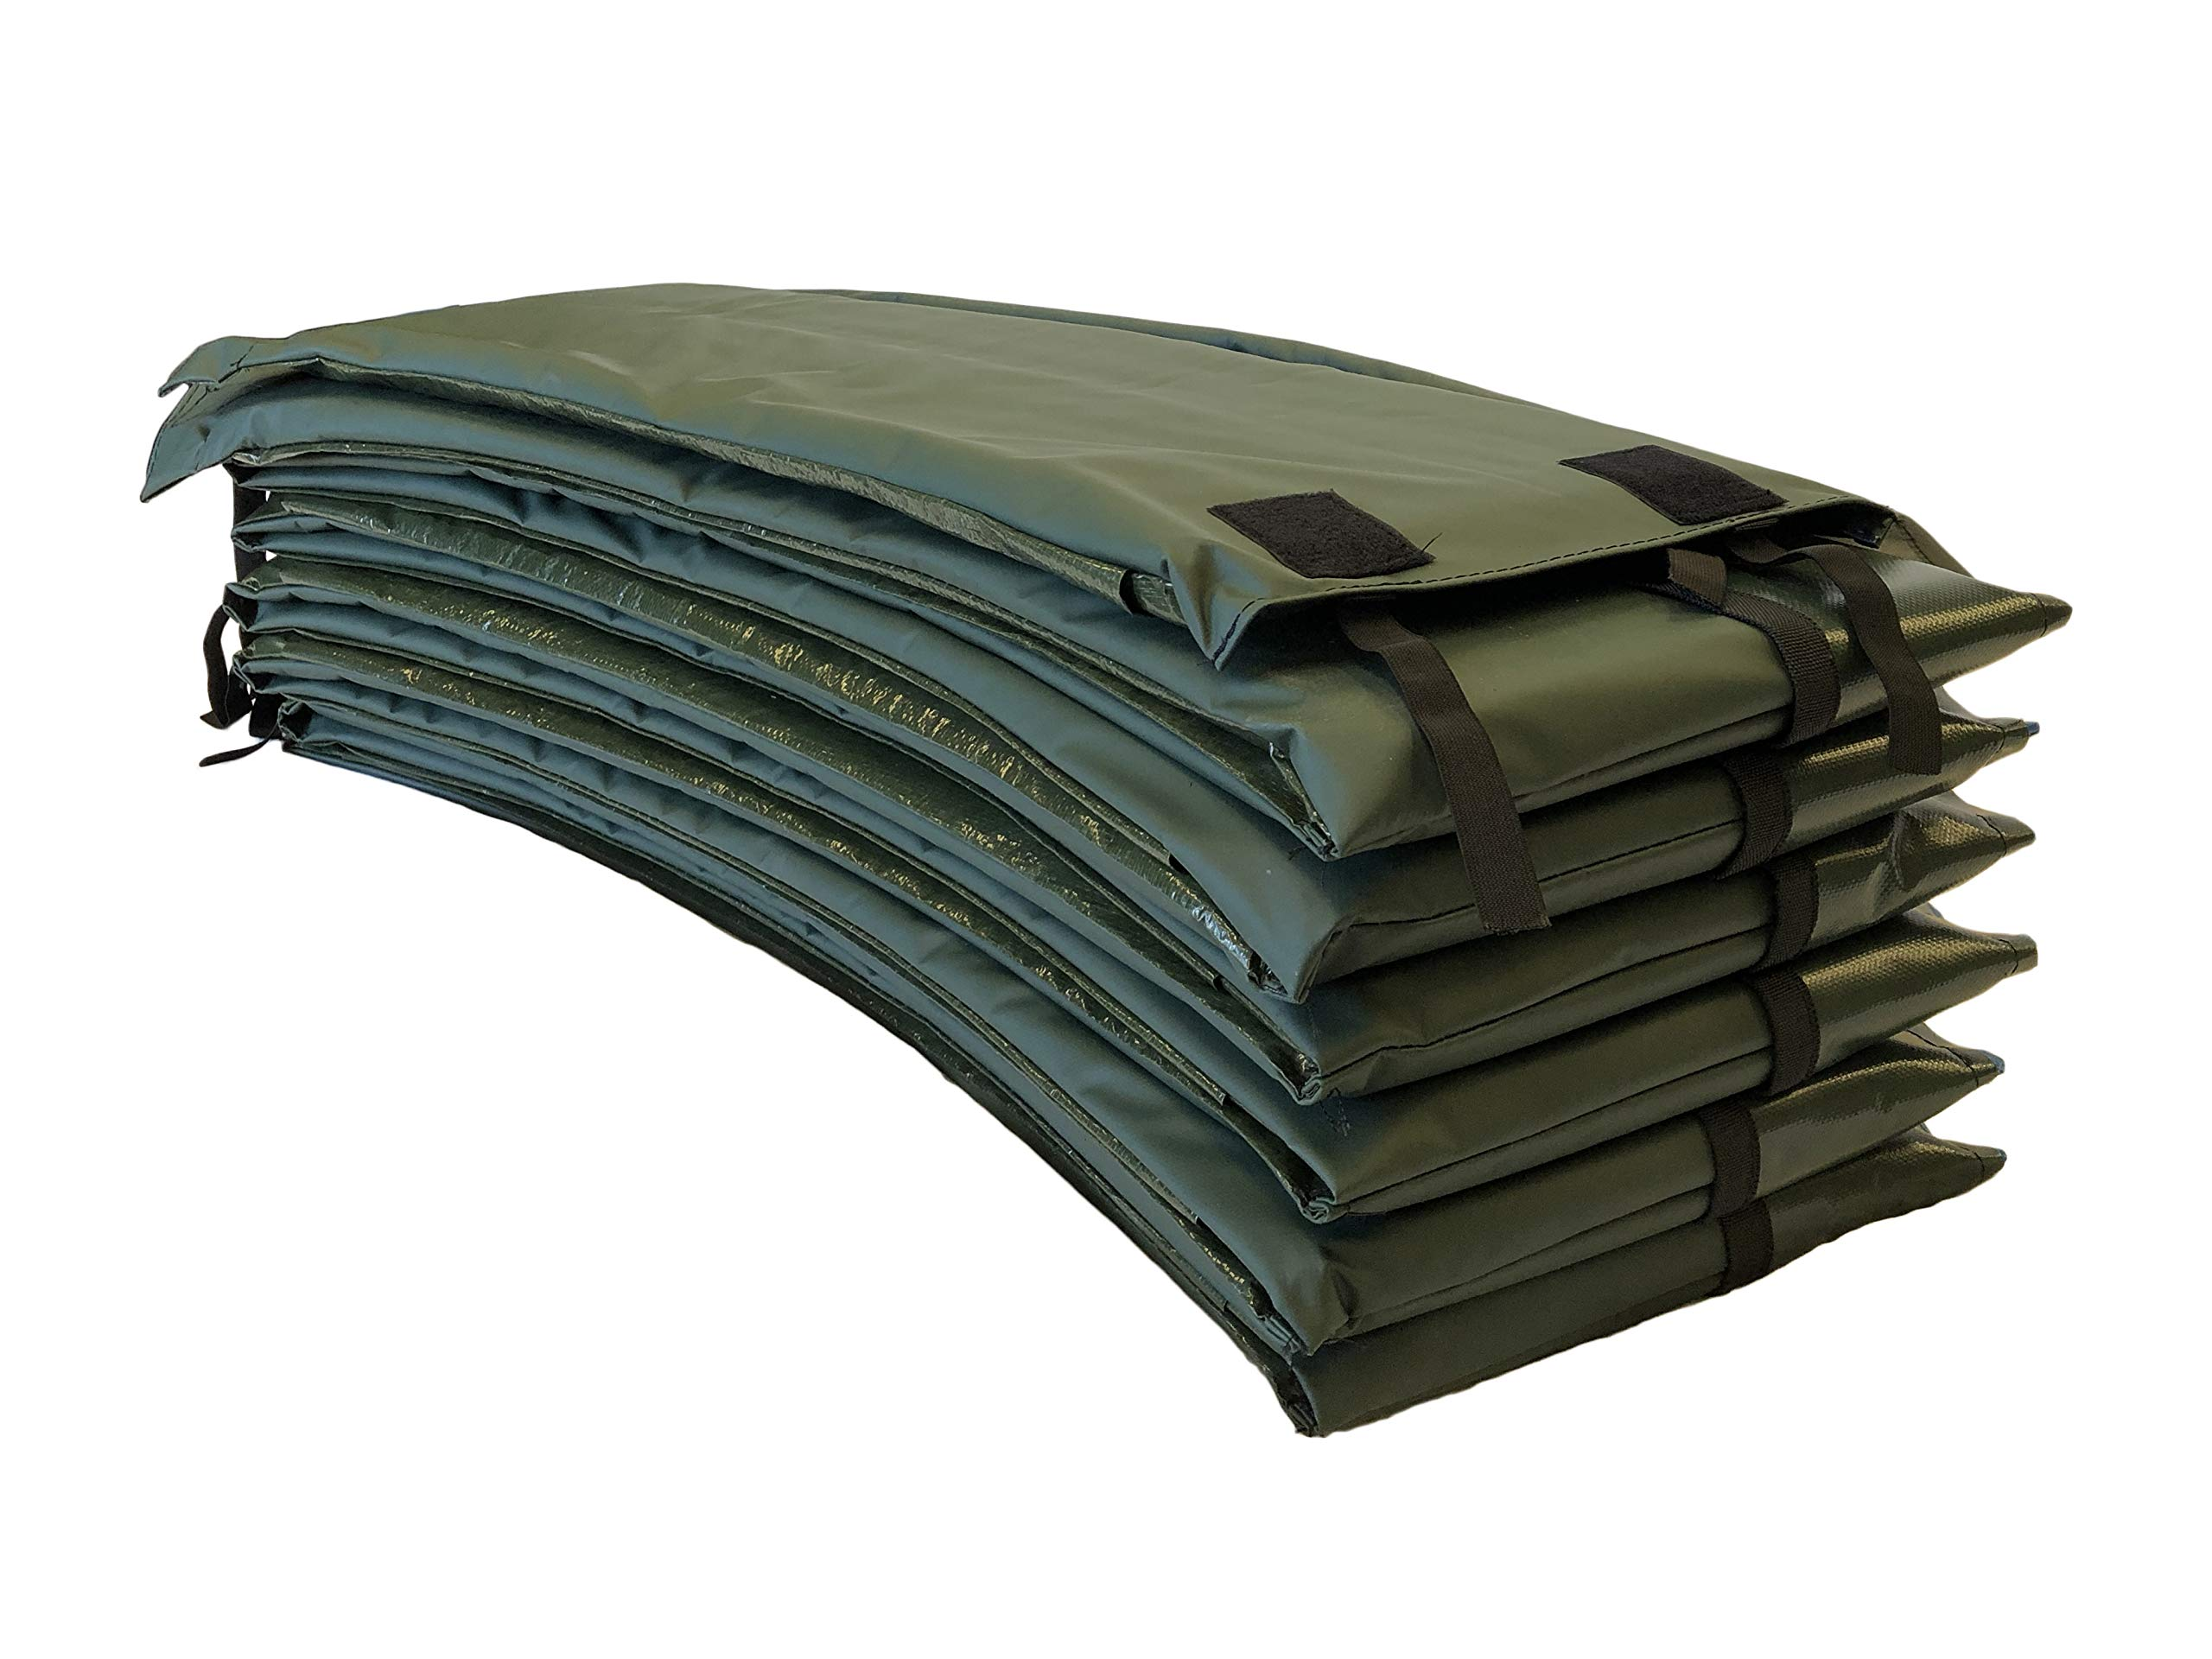 Trampoline Pro Trampoline Pads | Round 12ft & 14ft & 15ft | Square 13ft x 13ft & 14ft x 14ft | Blue and Green (Premium Green, 14 ft & 15 ft Premium)